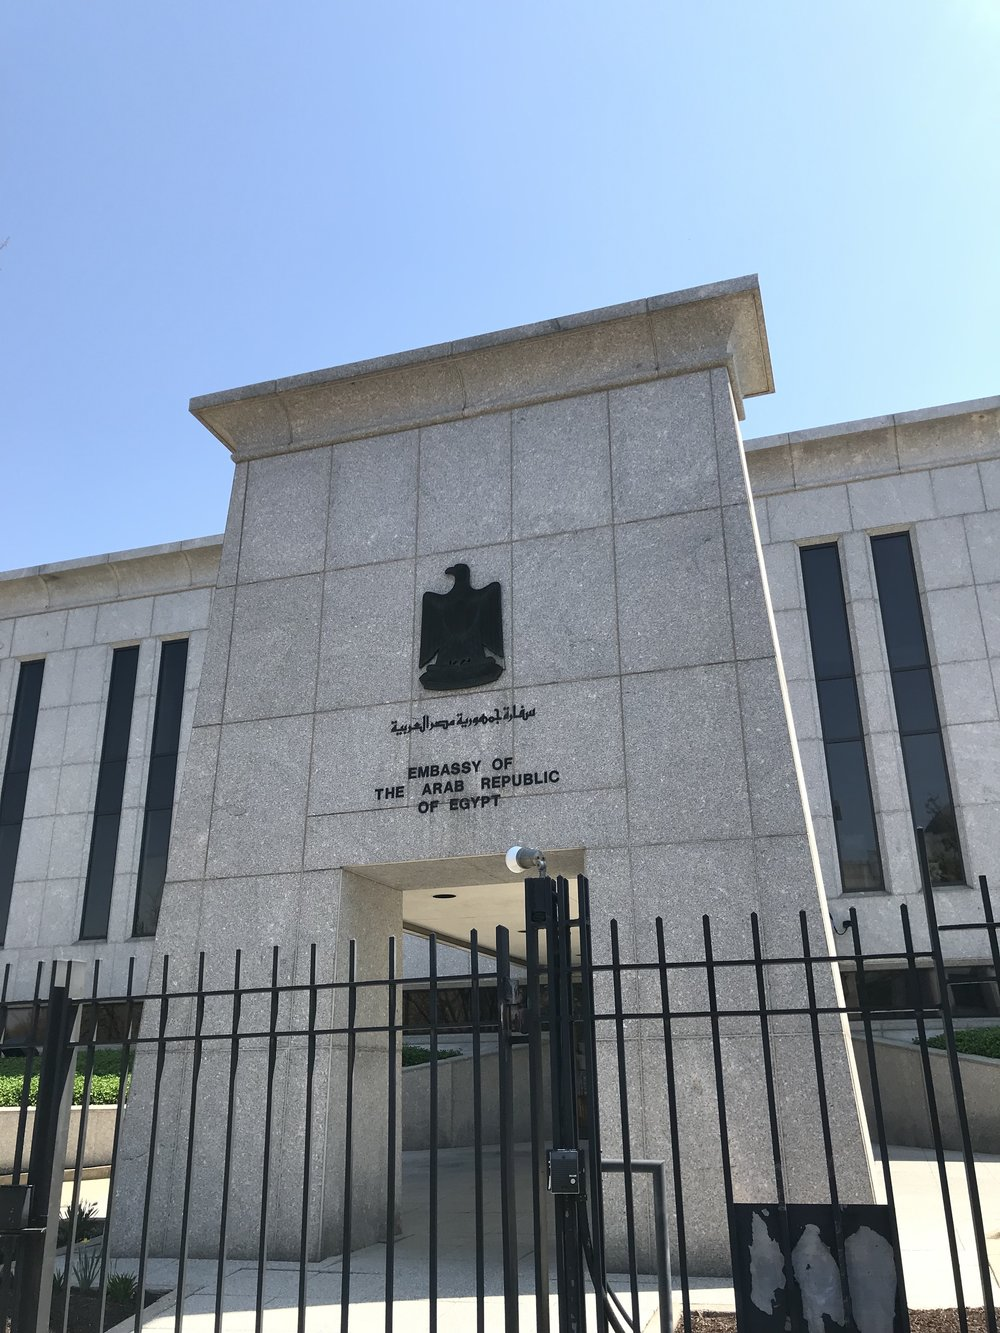 The Embassy of the Arab Republic of Egypt.